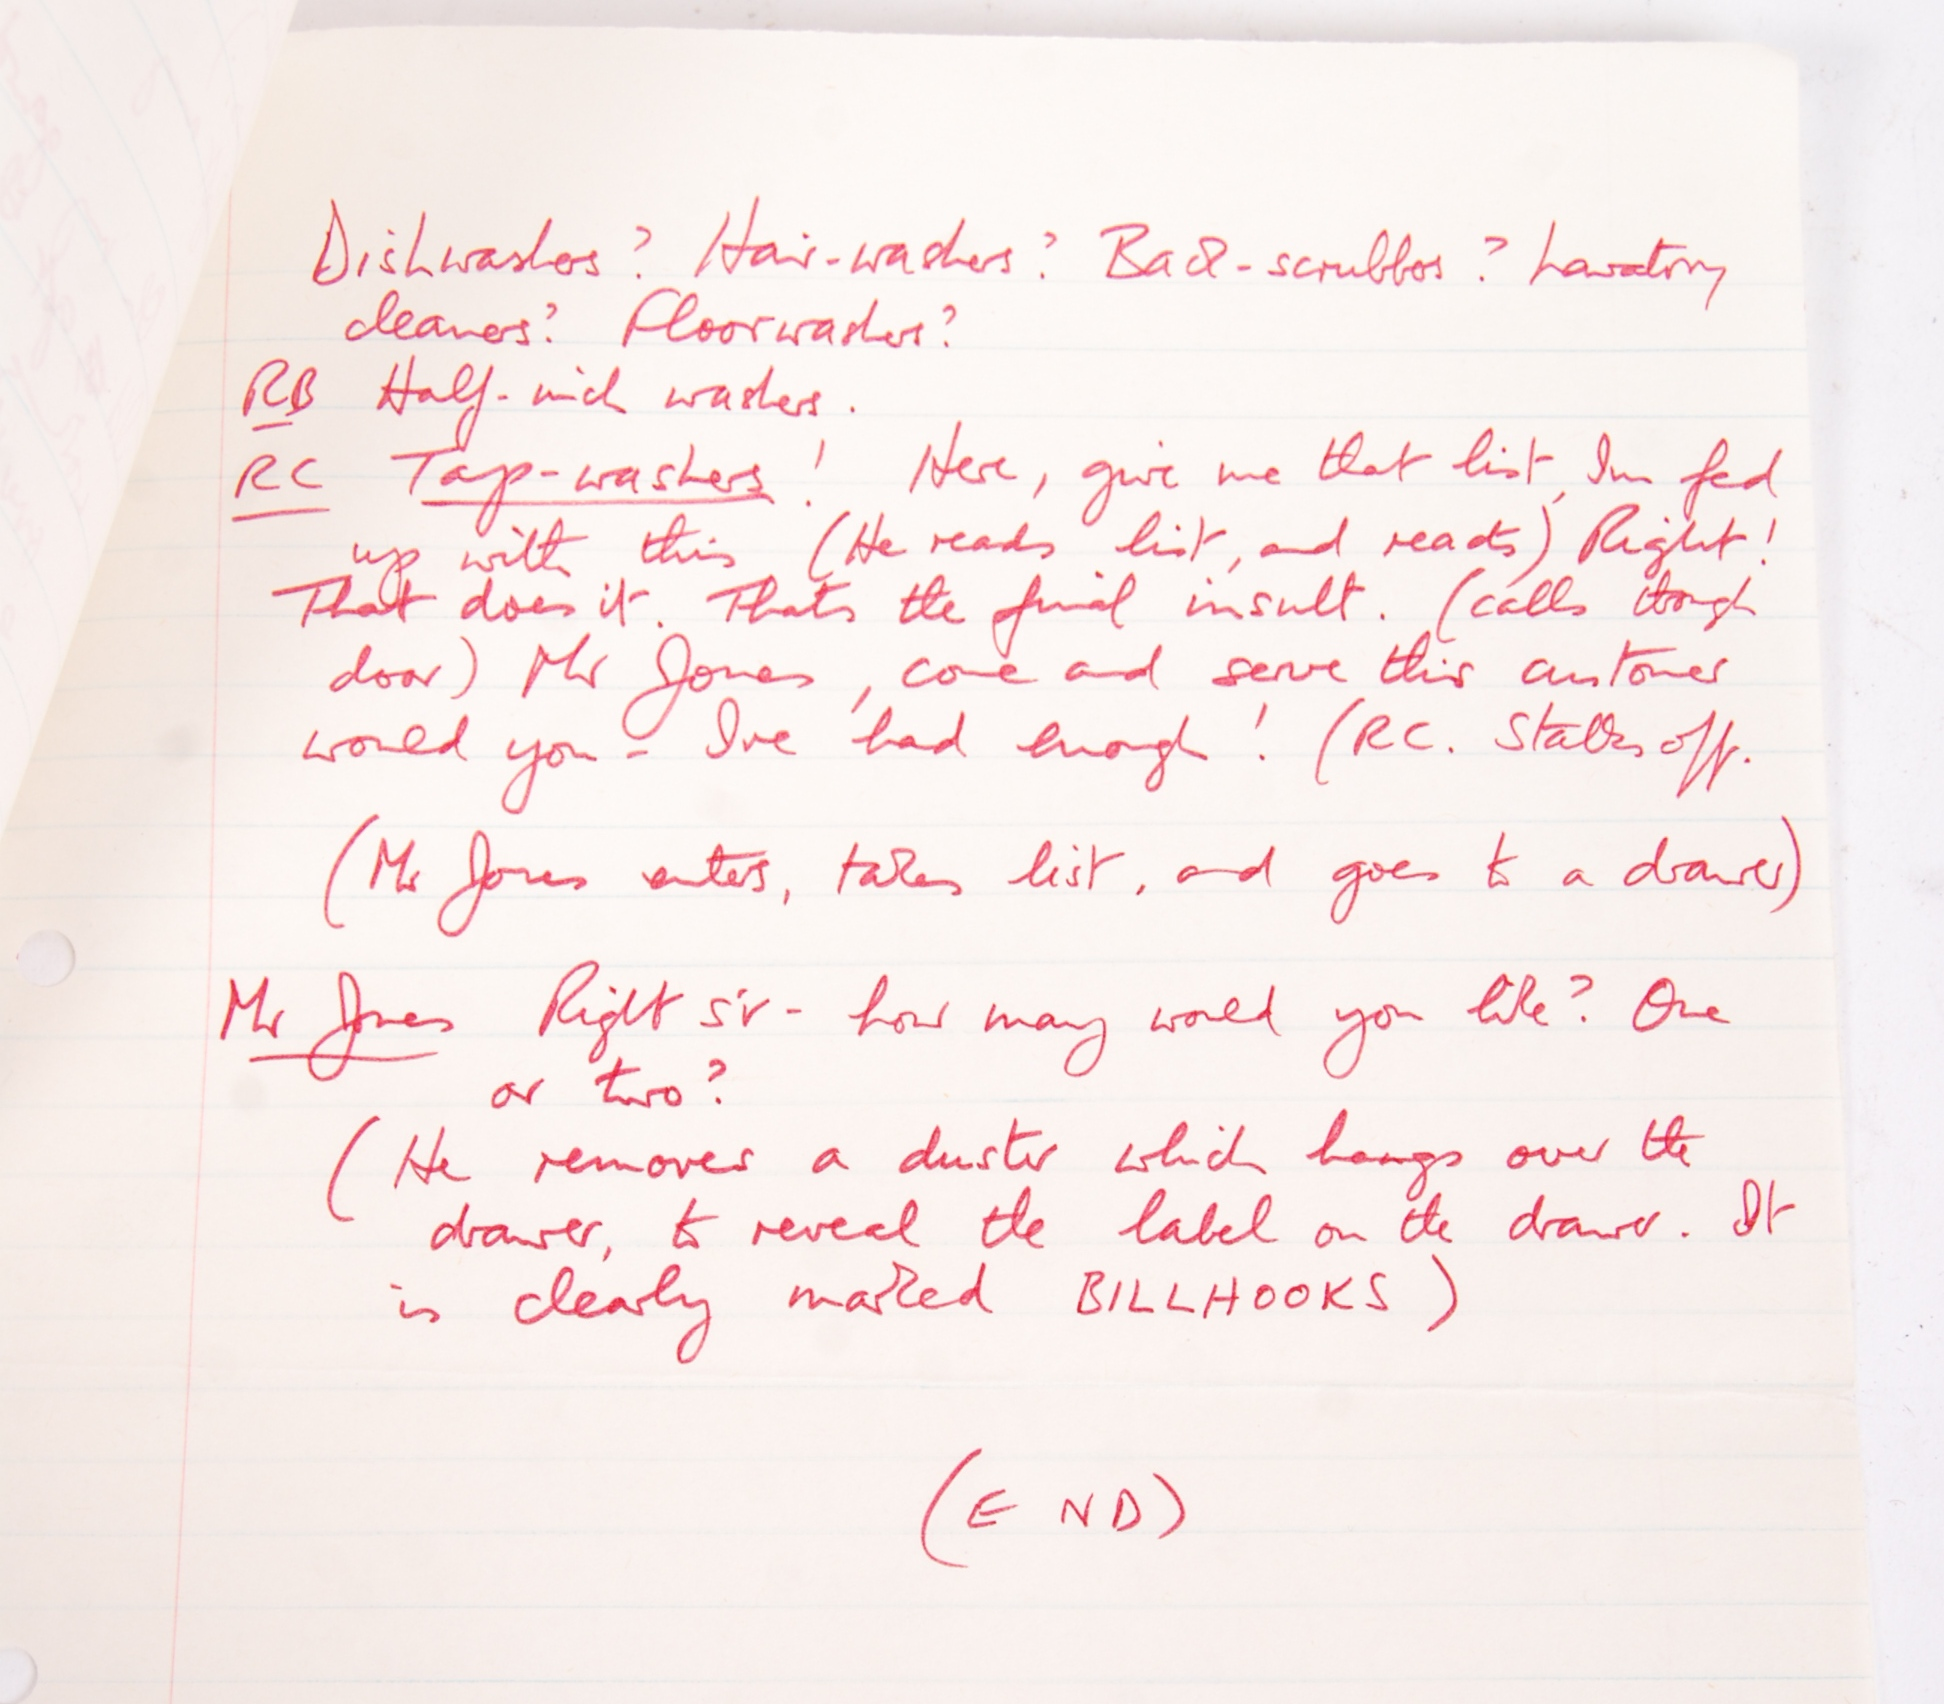 RONNIE BARKER'S HANDWRITTEN TWO RONNIES ' ANNIE FINKHOUSE ' FORK HANDLES SCRIPT - Image 6 of 7